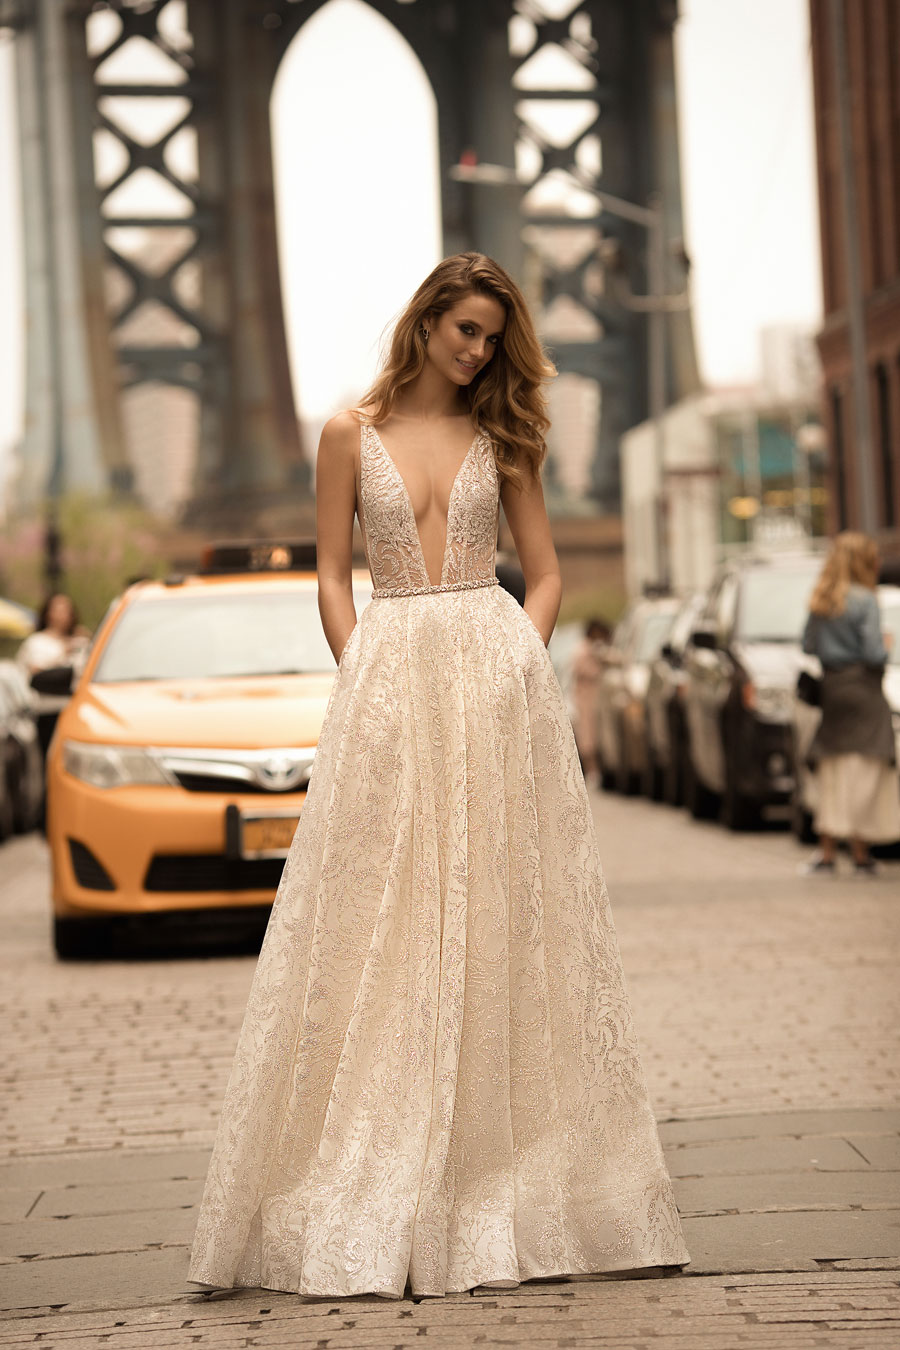 ... While All Designs Are Sophisticated And Detailed, You Can Find Many  Different Variations And Cuts That Can Speak To Very Different Styles Of  Brides.